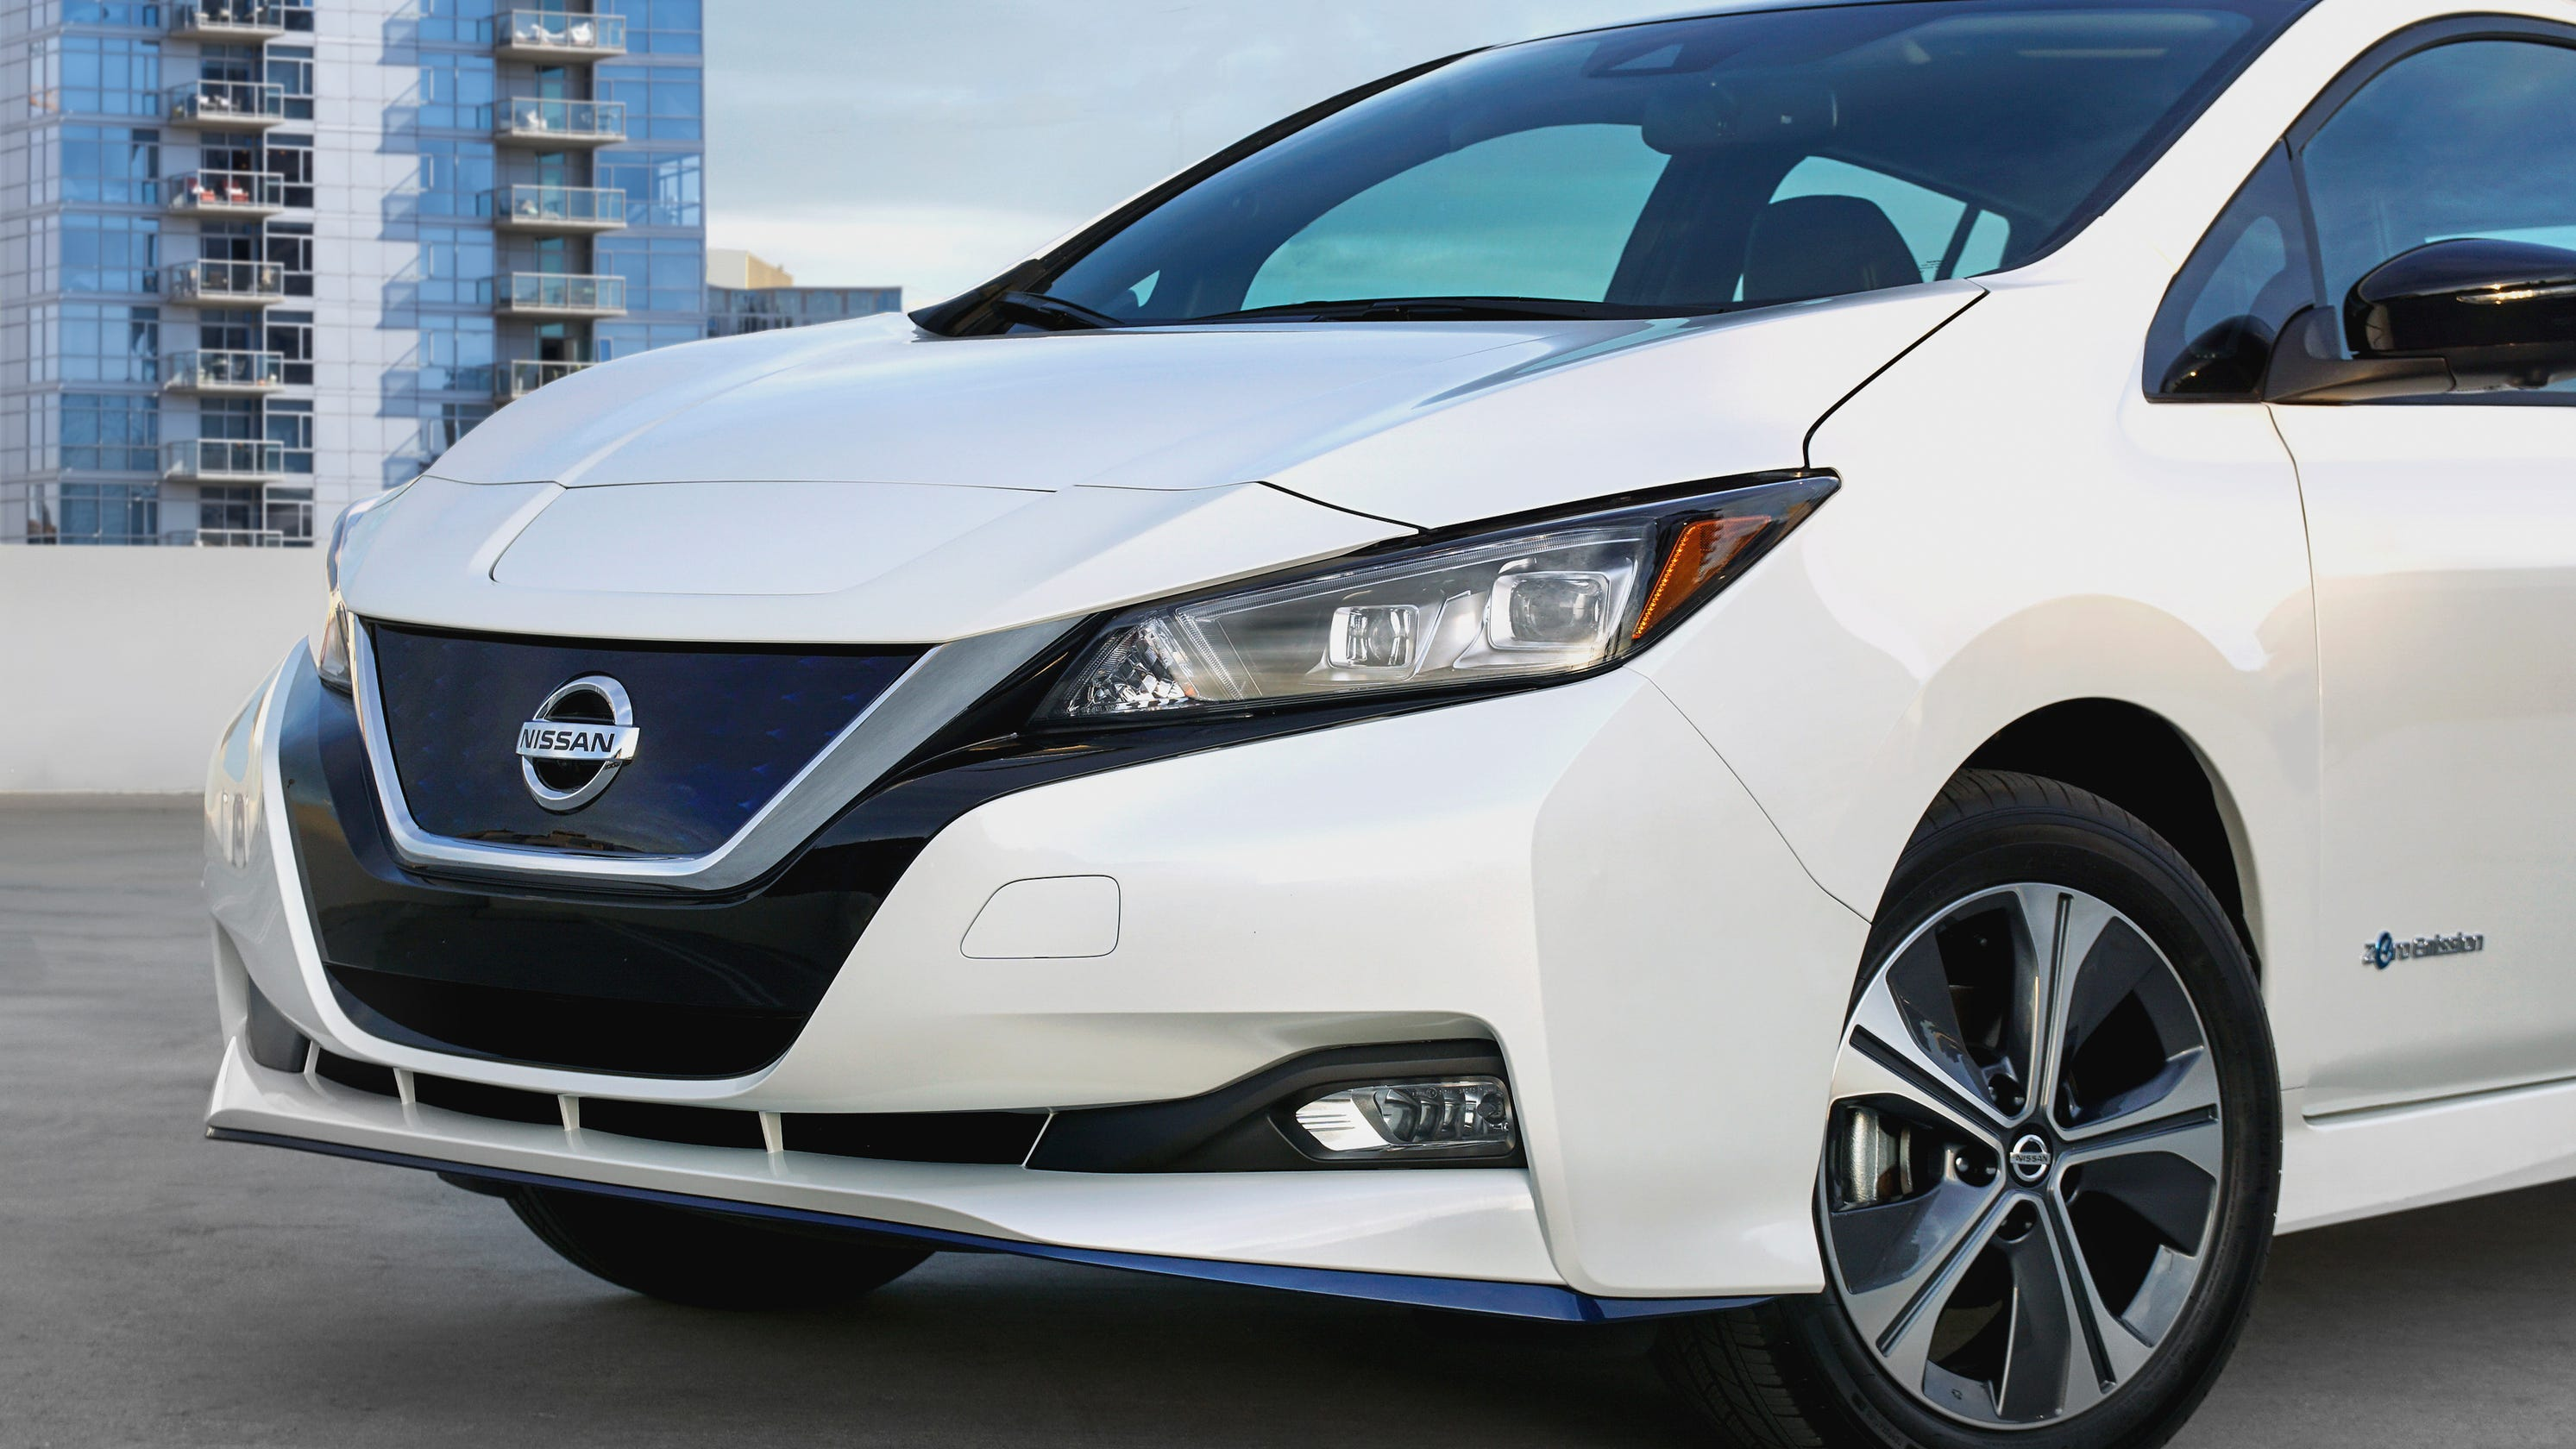 Nissan Leaf Electric Car Gets Longer Range 40 Boost To Battery For E